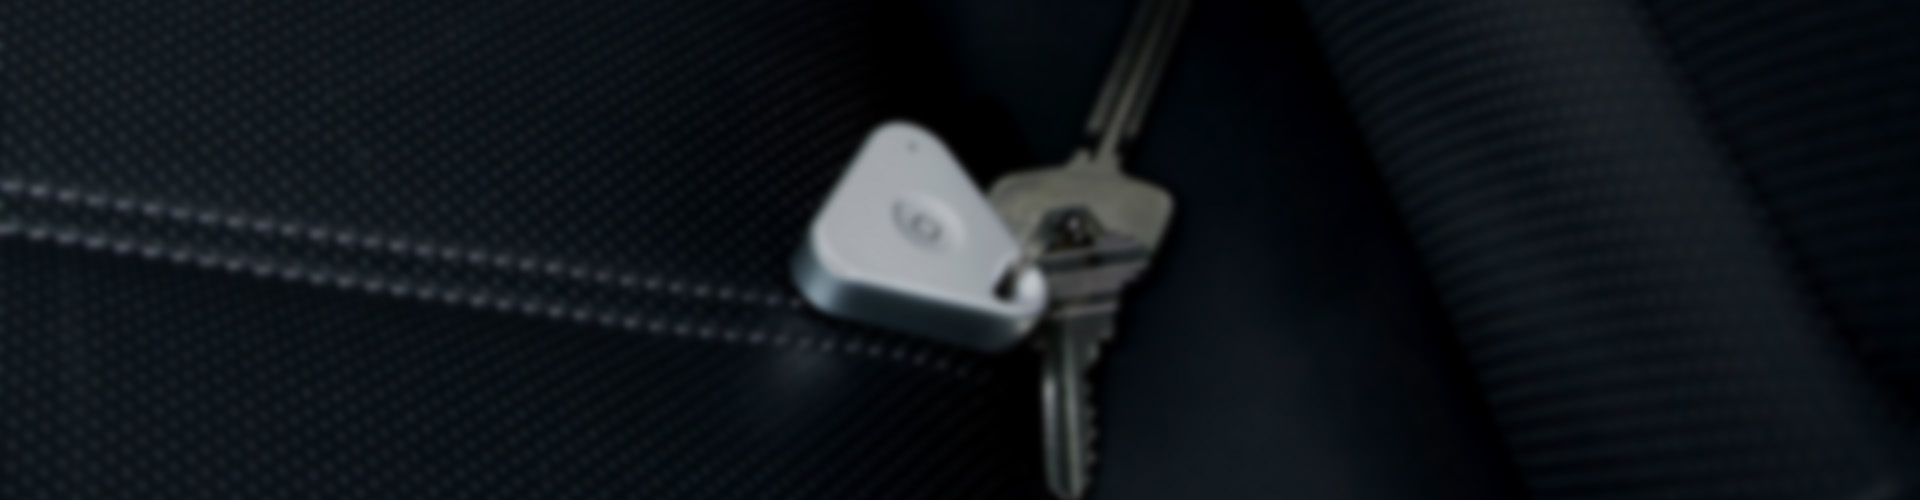 iHere 3.0 Key Finder + Selfie Remote Will Make You Smile and Not Frown Anymore